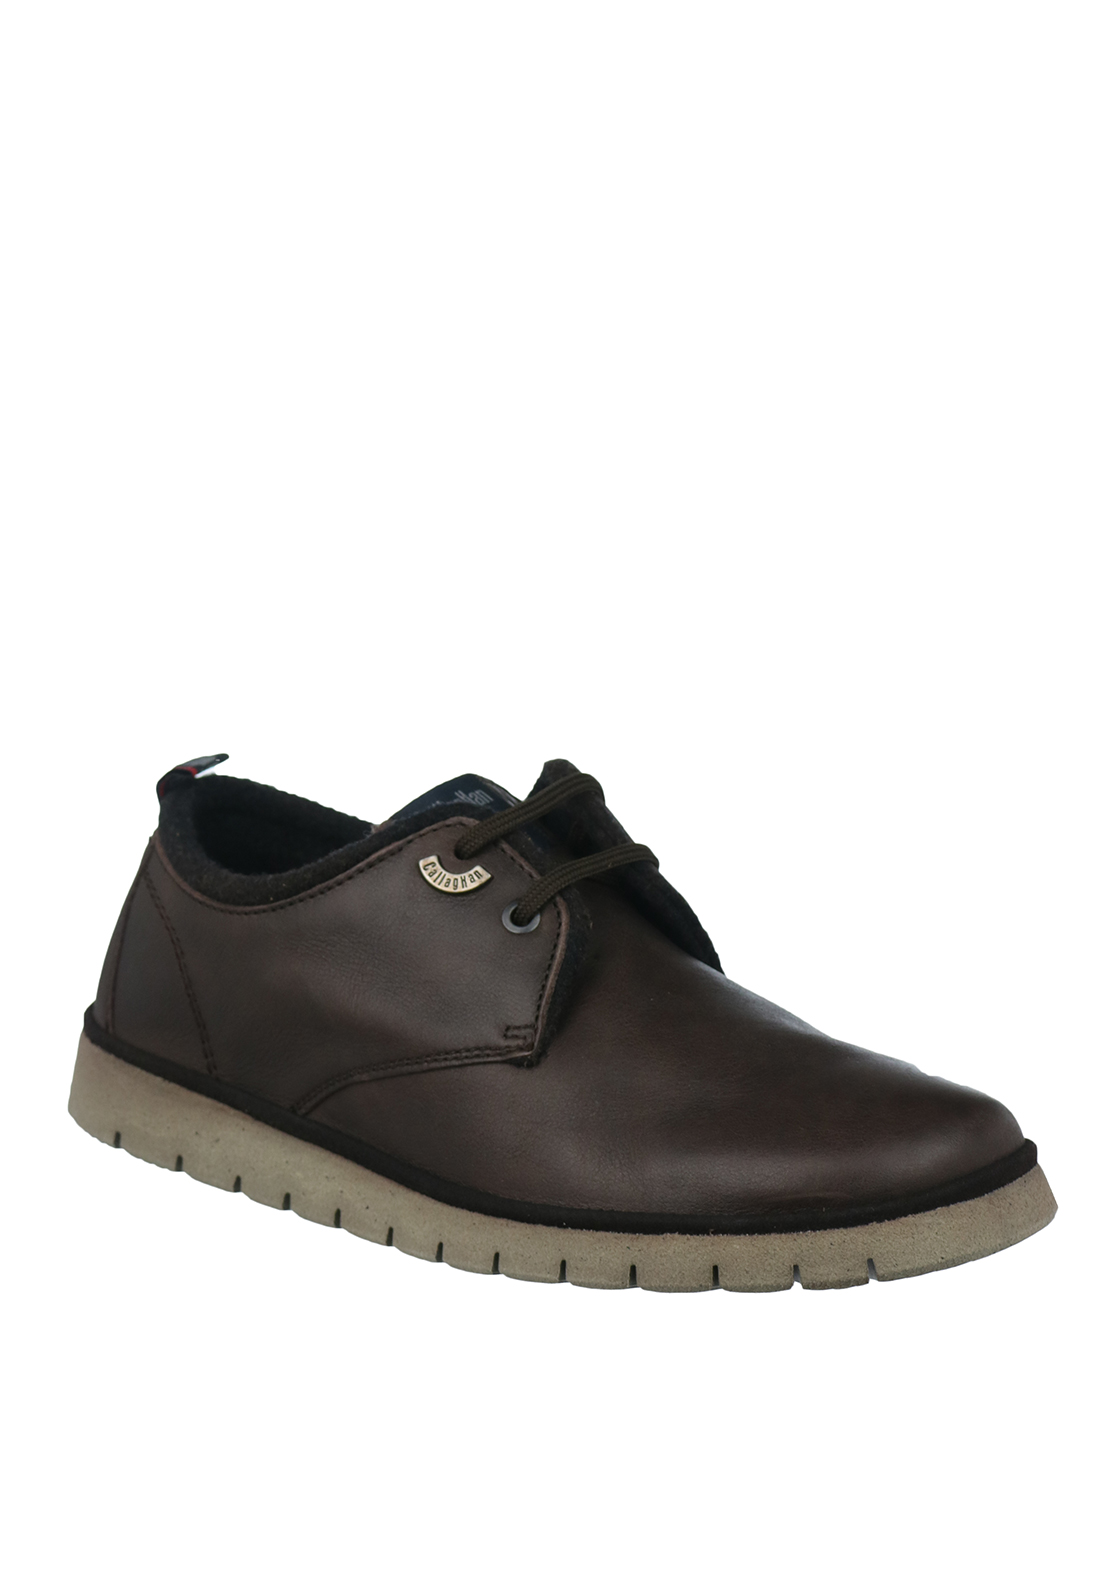 Callaghan Leather Lace Up Shoe, Brown